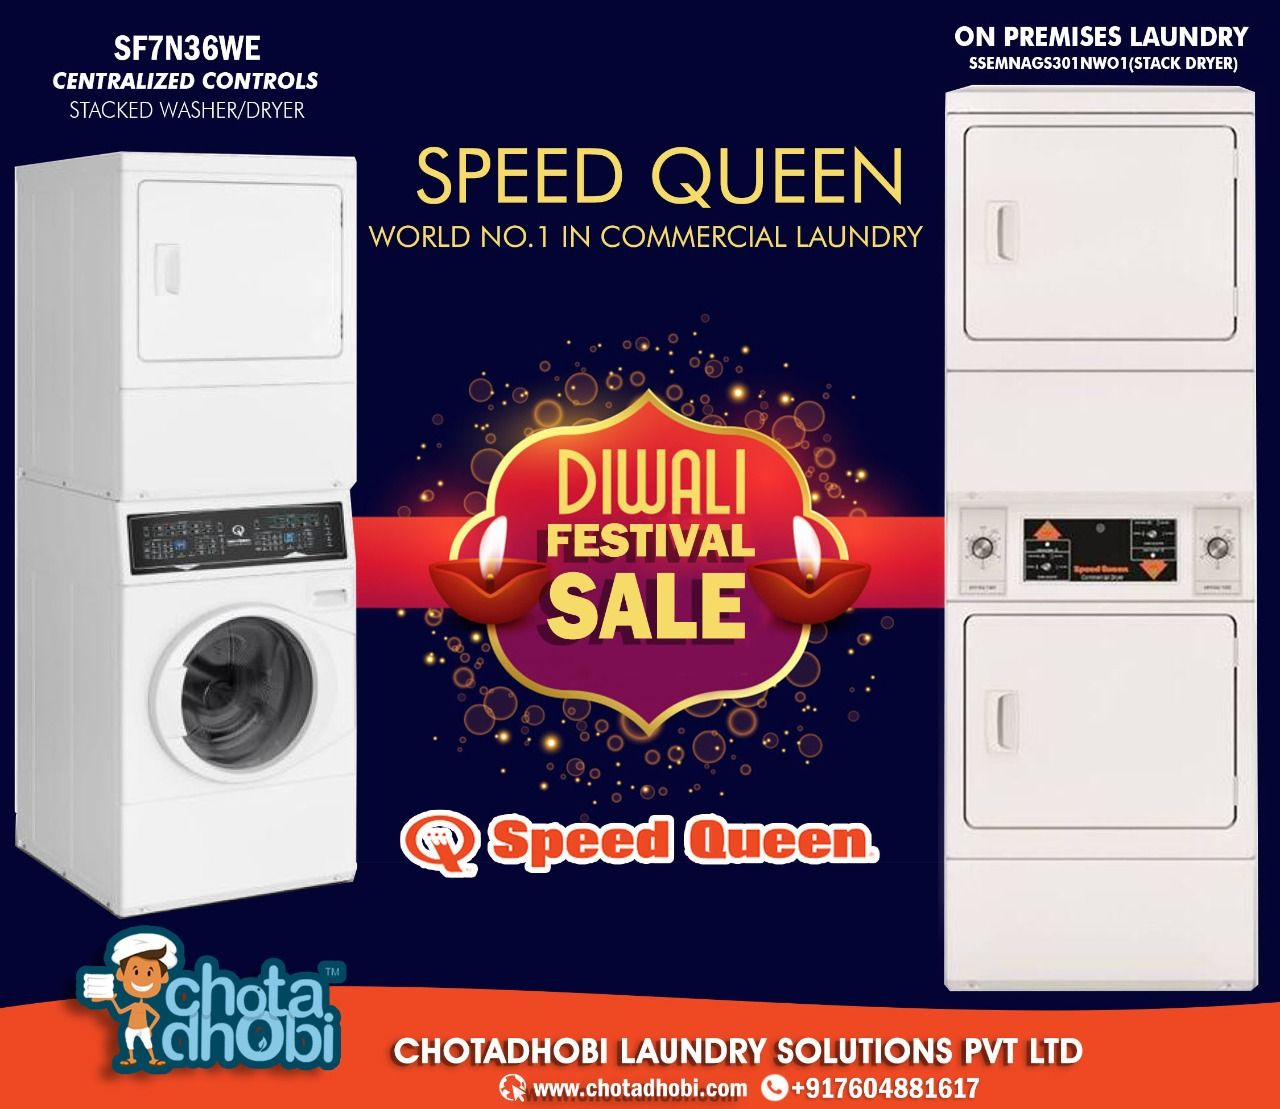 Shop Imported Speed Queen Laundry Machines On This Special Diwali